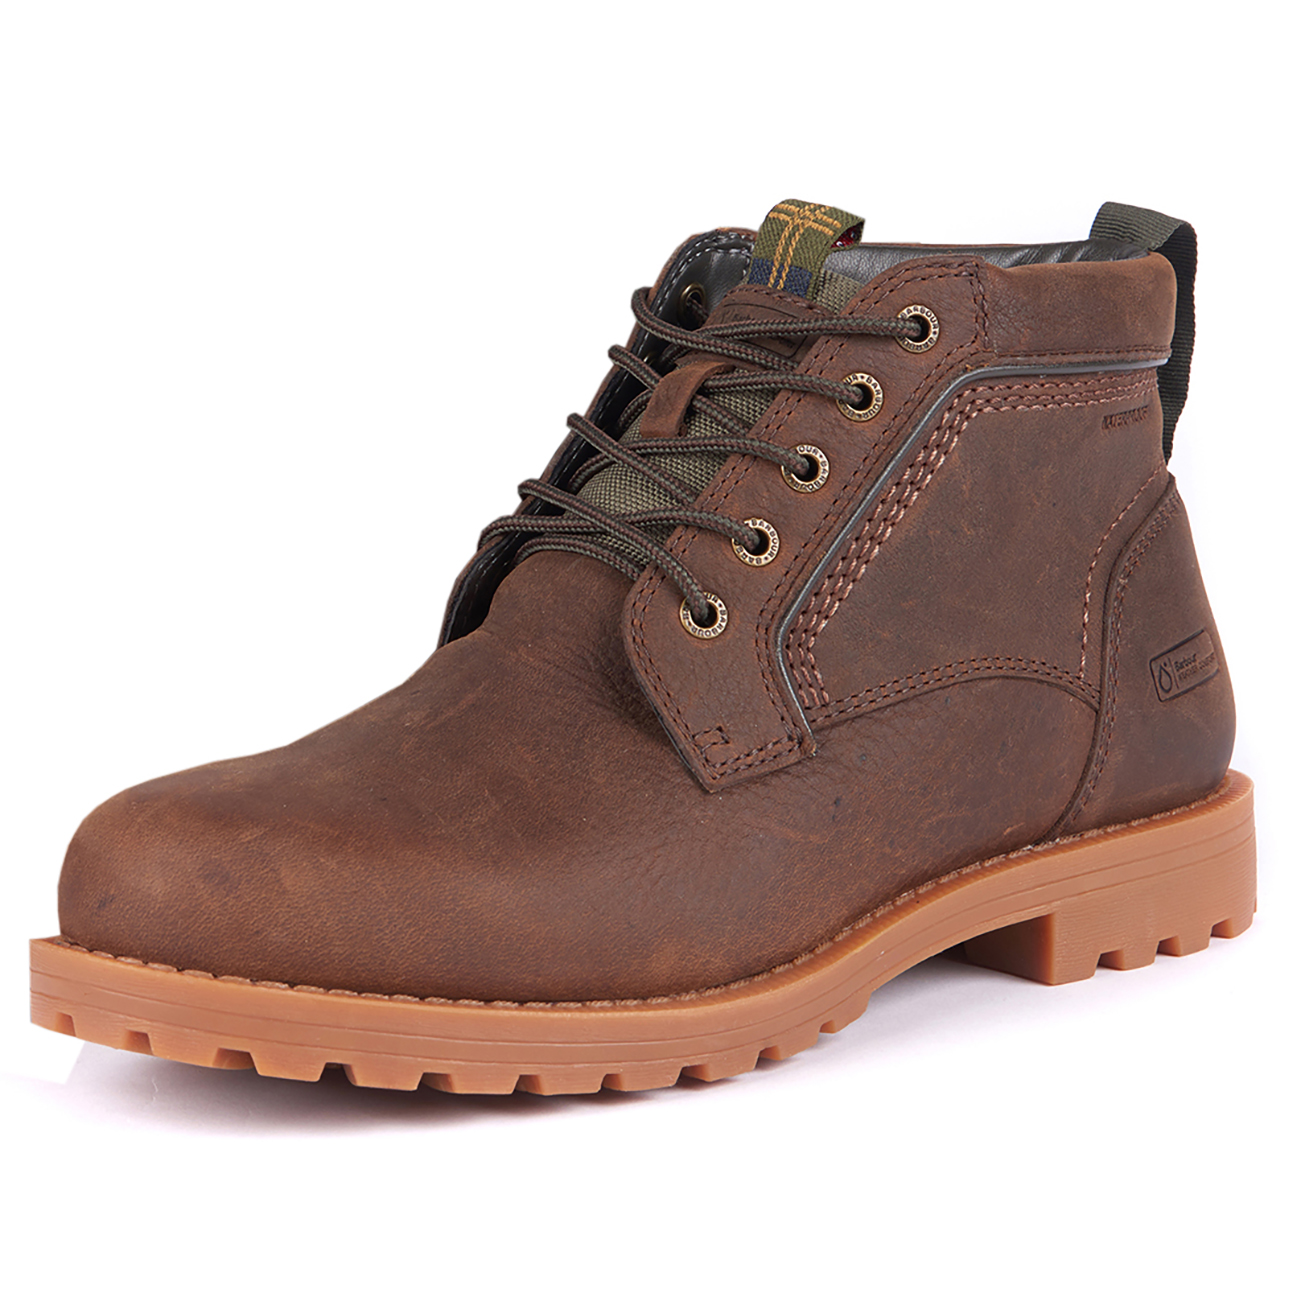 Barbour Carrock Chukka Boot